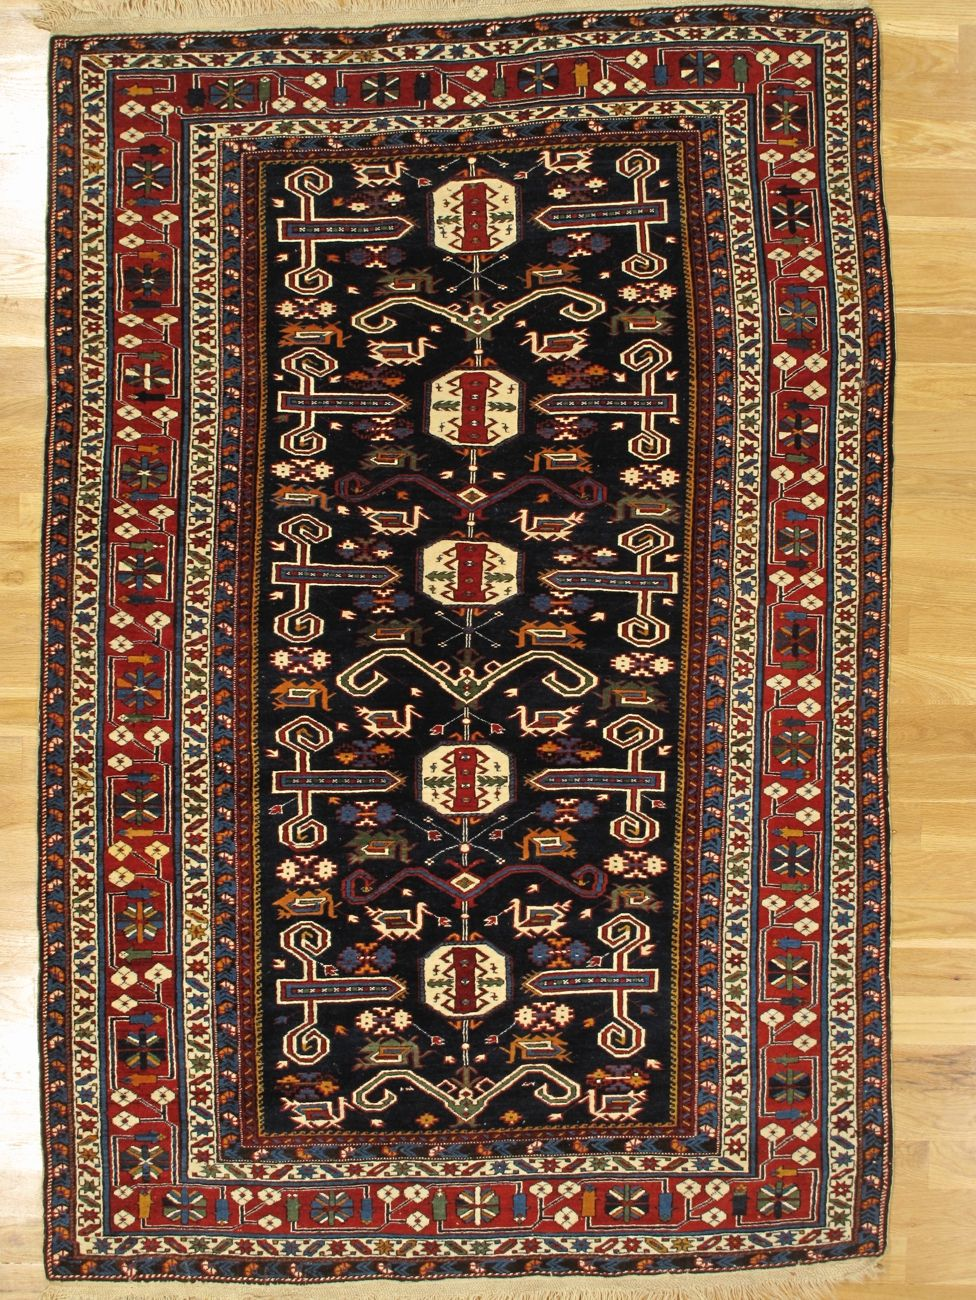 Perepedil Rug From Kuba District Eastern Caucasus Age Circa 1900 Size 7 0 X4 9 213x145 Cm Antique Persian Carpet Rugs Rugs On Carpet